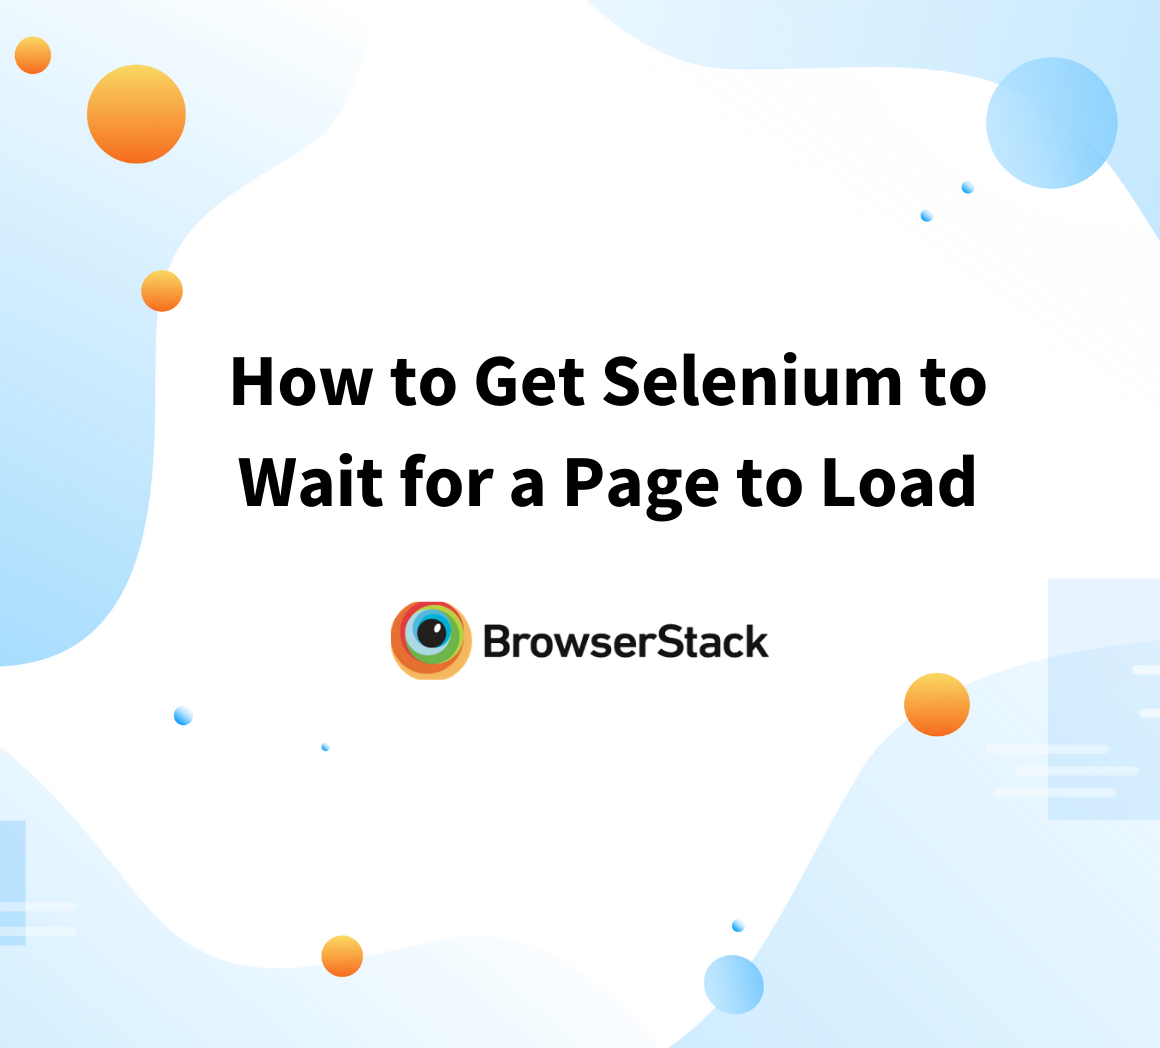 How to get Selenium to wait for a page to load